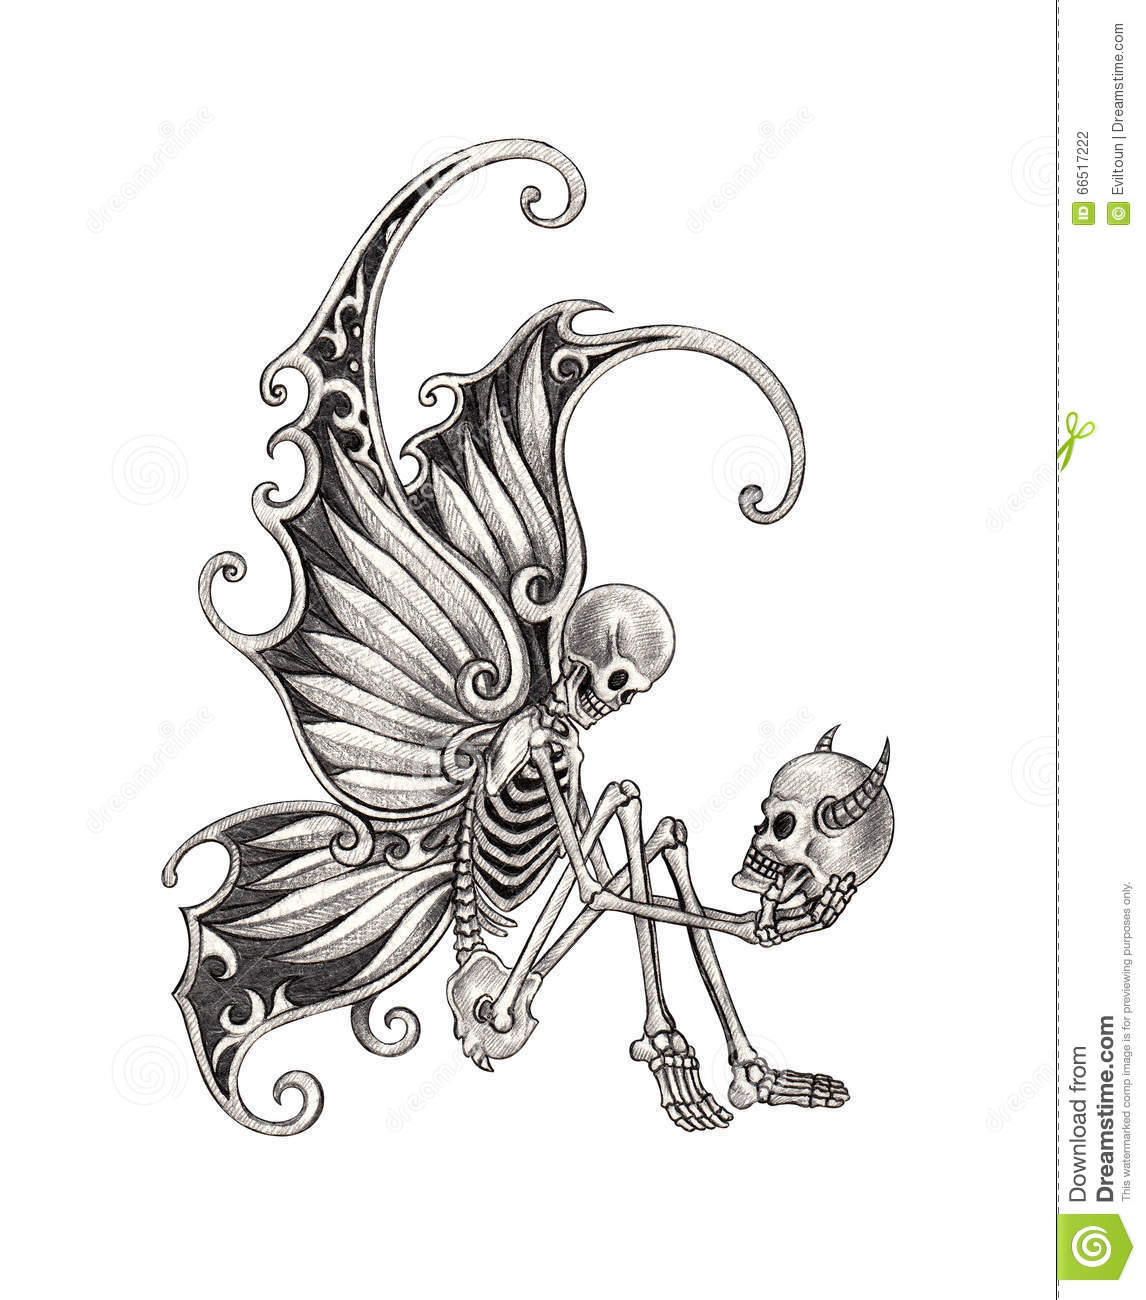 Flying Eye Patch Skull Vector Cartoon Illustration further Pumpkin Face Silhouettes furthermore Witch Coloring Pages moreover Satan additionally Stock Illustration Art Skull Fairy Tattoo Design Smiley Face Surreal Fantasy Hand Pencil Drawing Paper Image66517222. on scary halloween face drawing